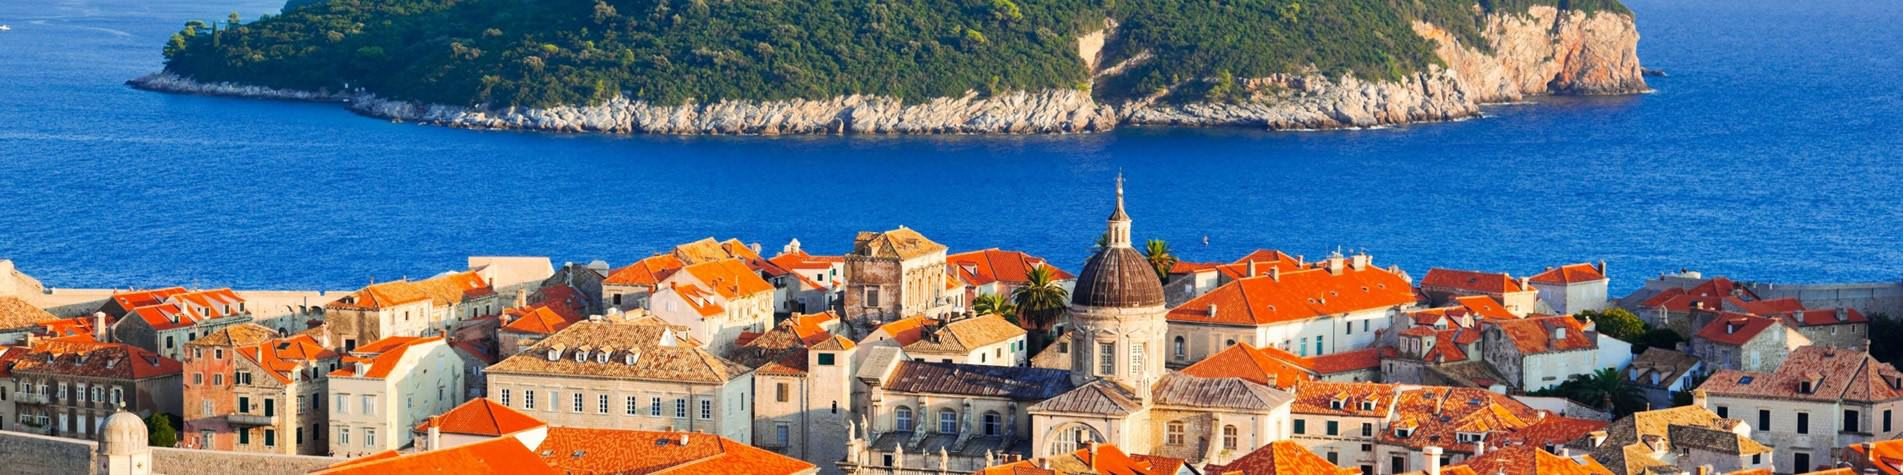 Dubrovnik Holidays Specialists